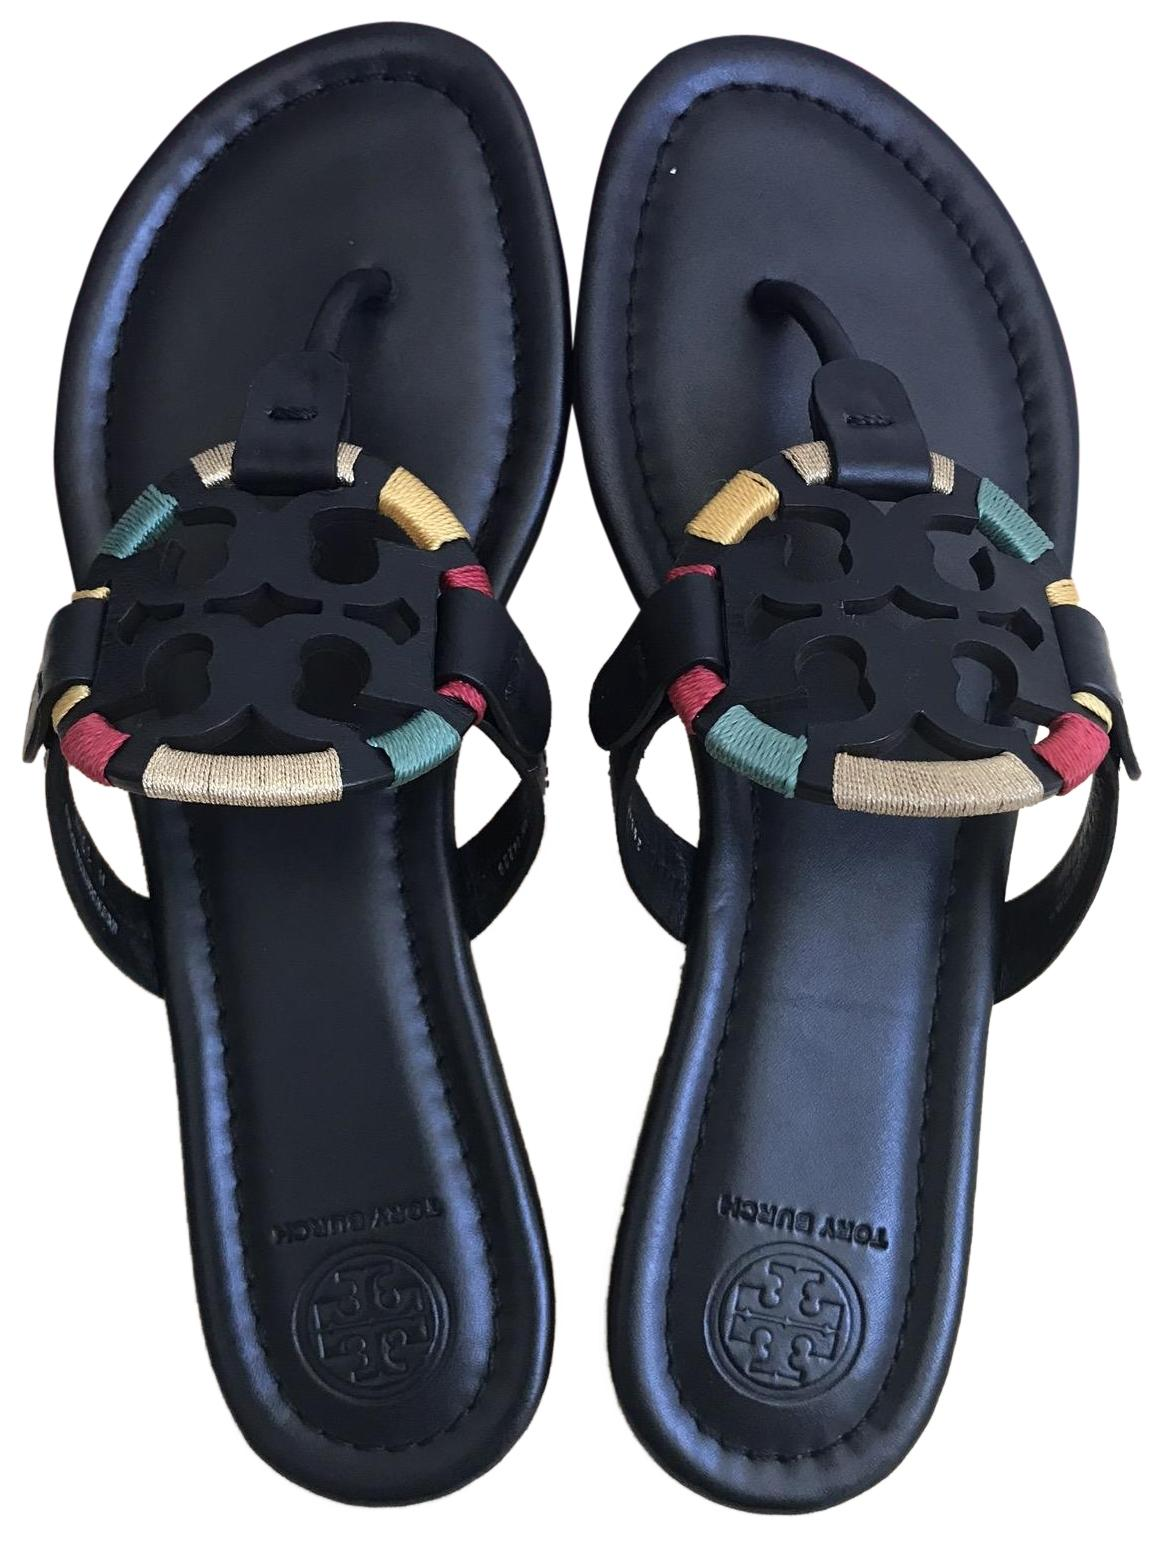 23d5f2542d9d Tory Burch Black Embroidered 9.5m Miller Miller Miller Miller Sandals Size  US 9.5 Regular (M